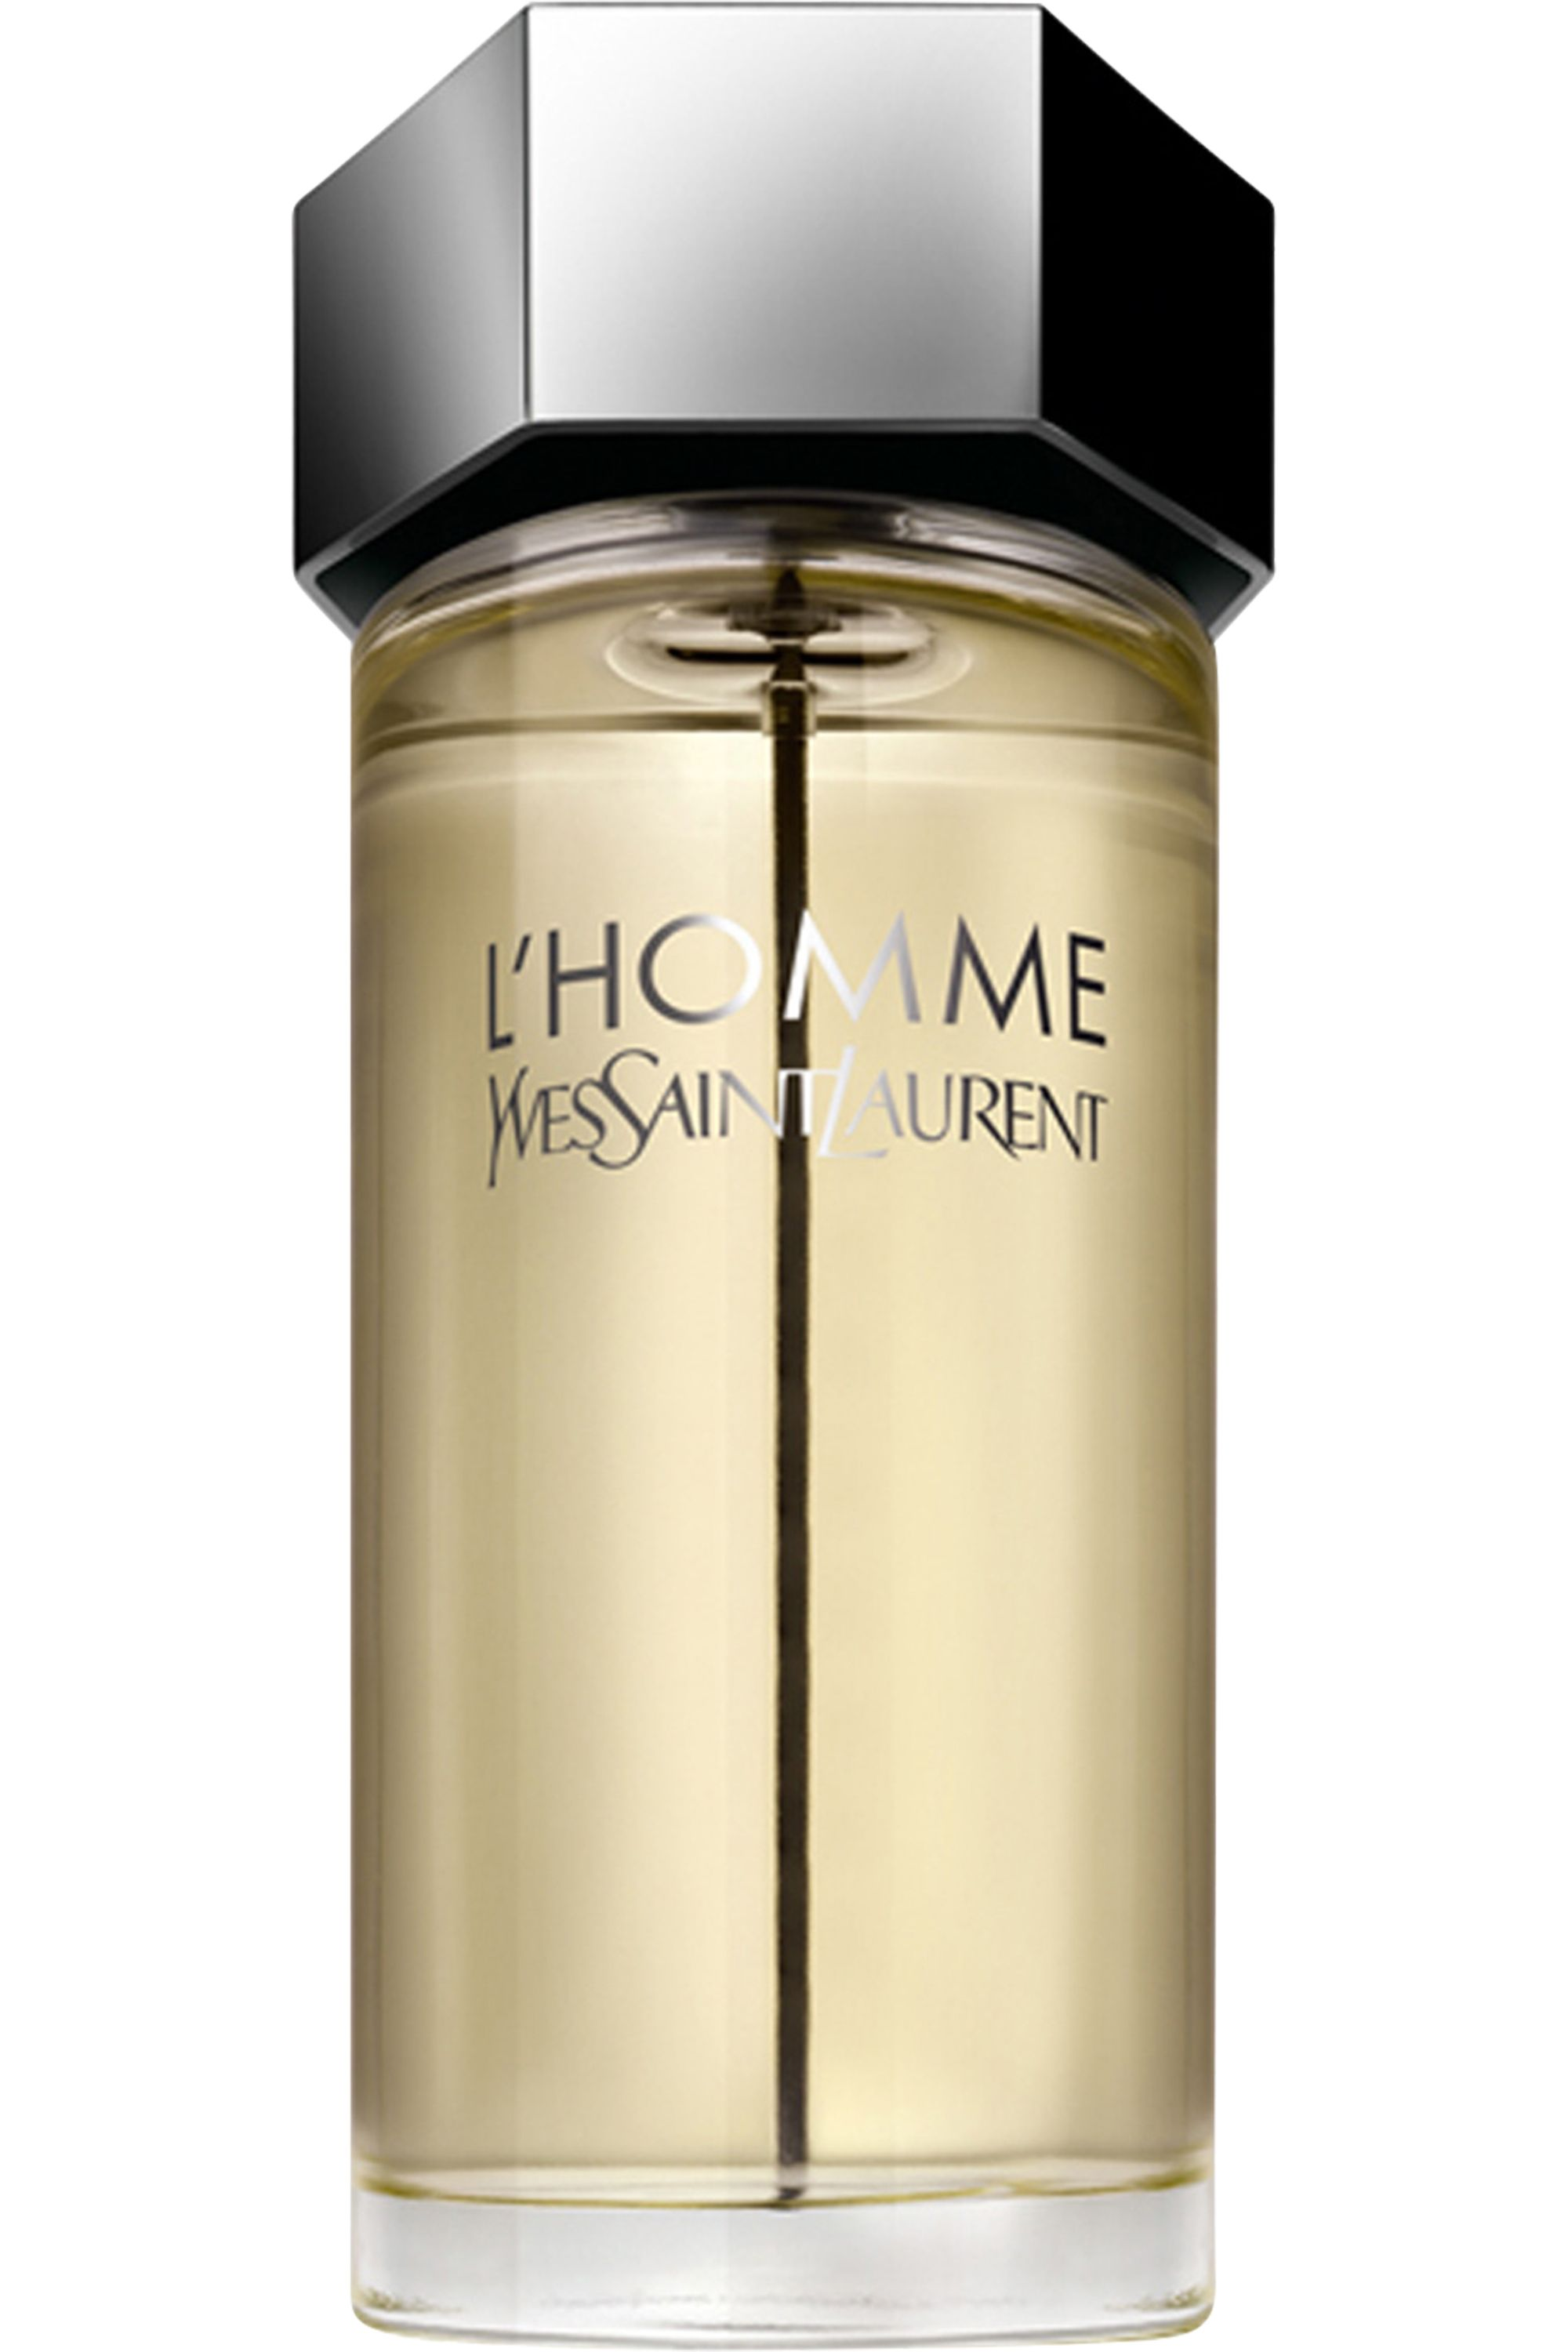 Blissim : Yves Saint Laurent - L'Homme Eau de Toilette - 200 ml